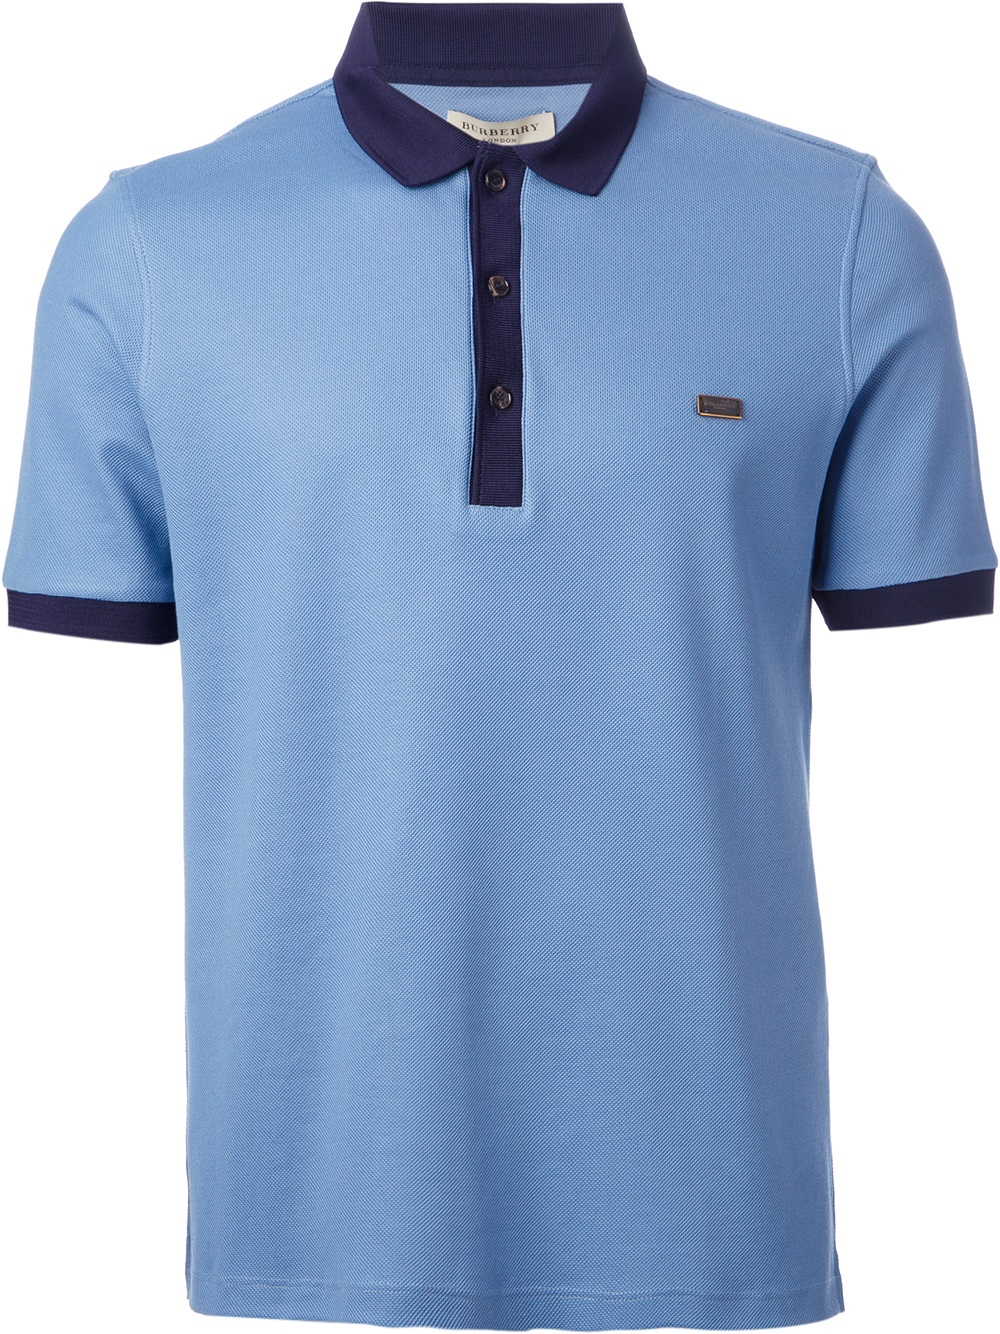 Lyst Burberry Contrast Collar Polo Shirt In Blue For Men